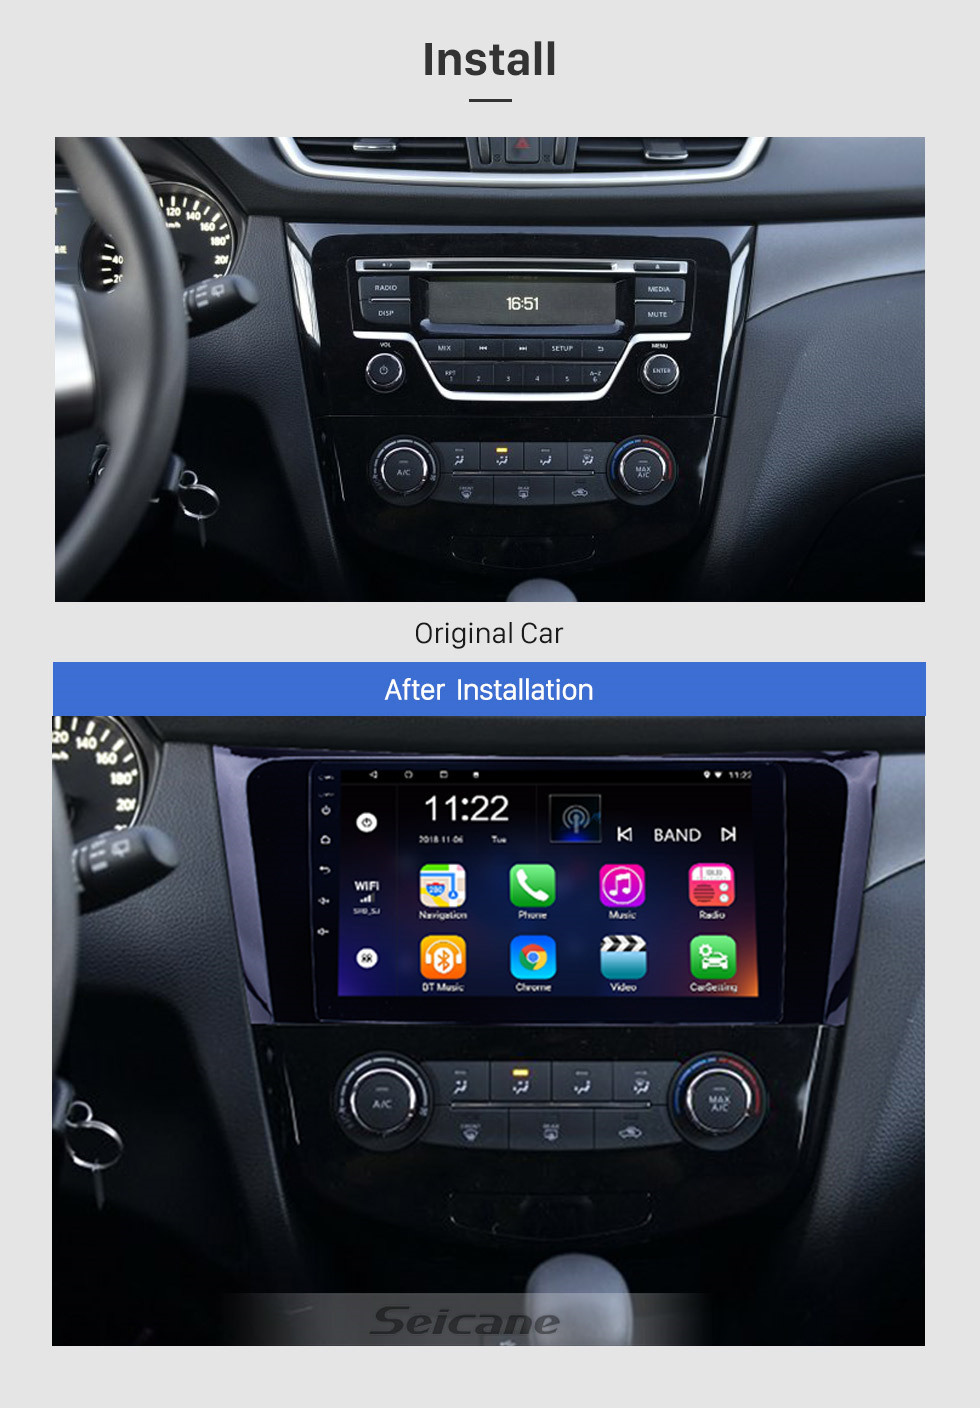 Seicane All-in-one Android 10.0 2014 Nissan QashQai 9 inch radio GPS Auto AV System Touch Screen Bluetooth WiFi 3G Mirror Link OBD2 Steering Wheel Control